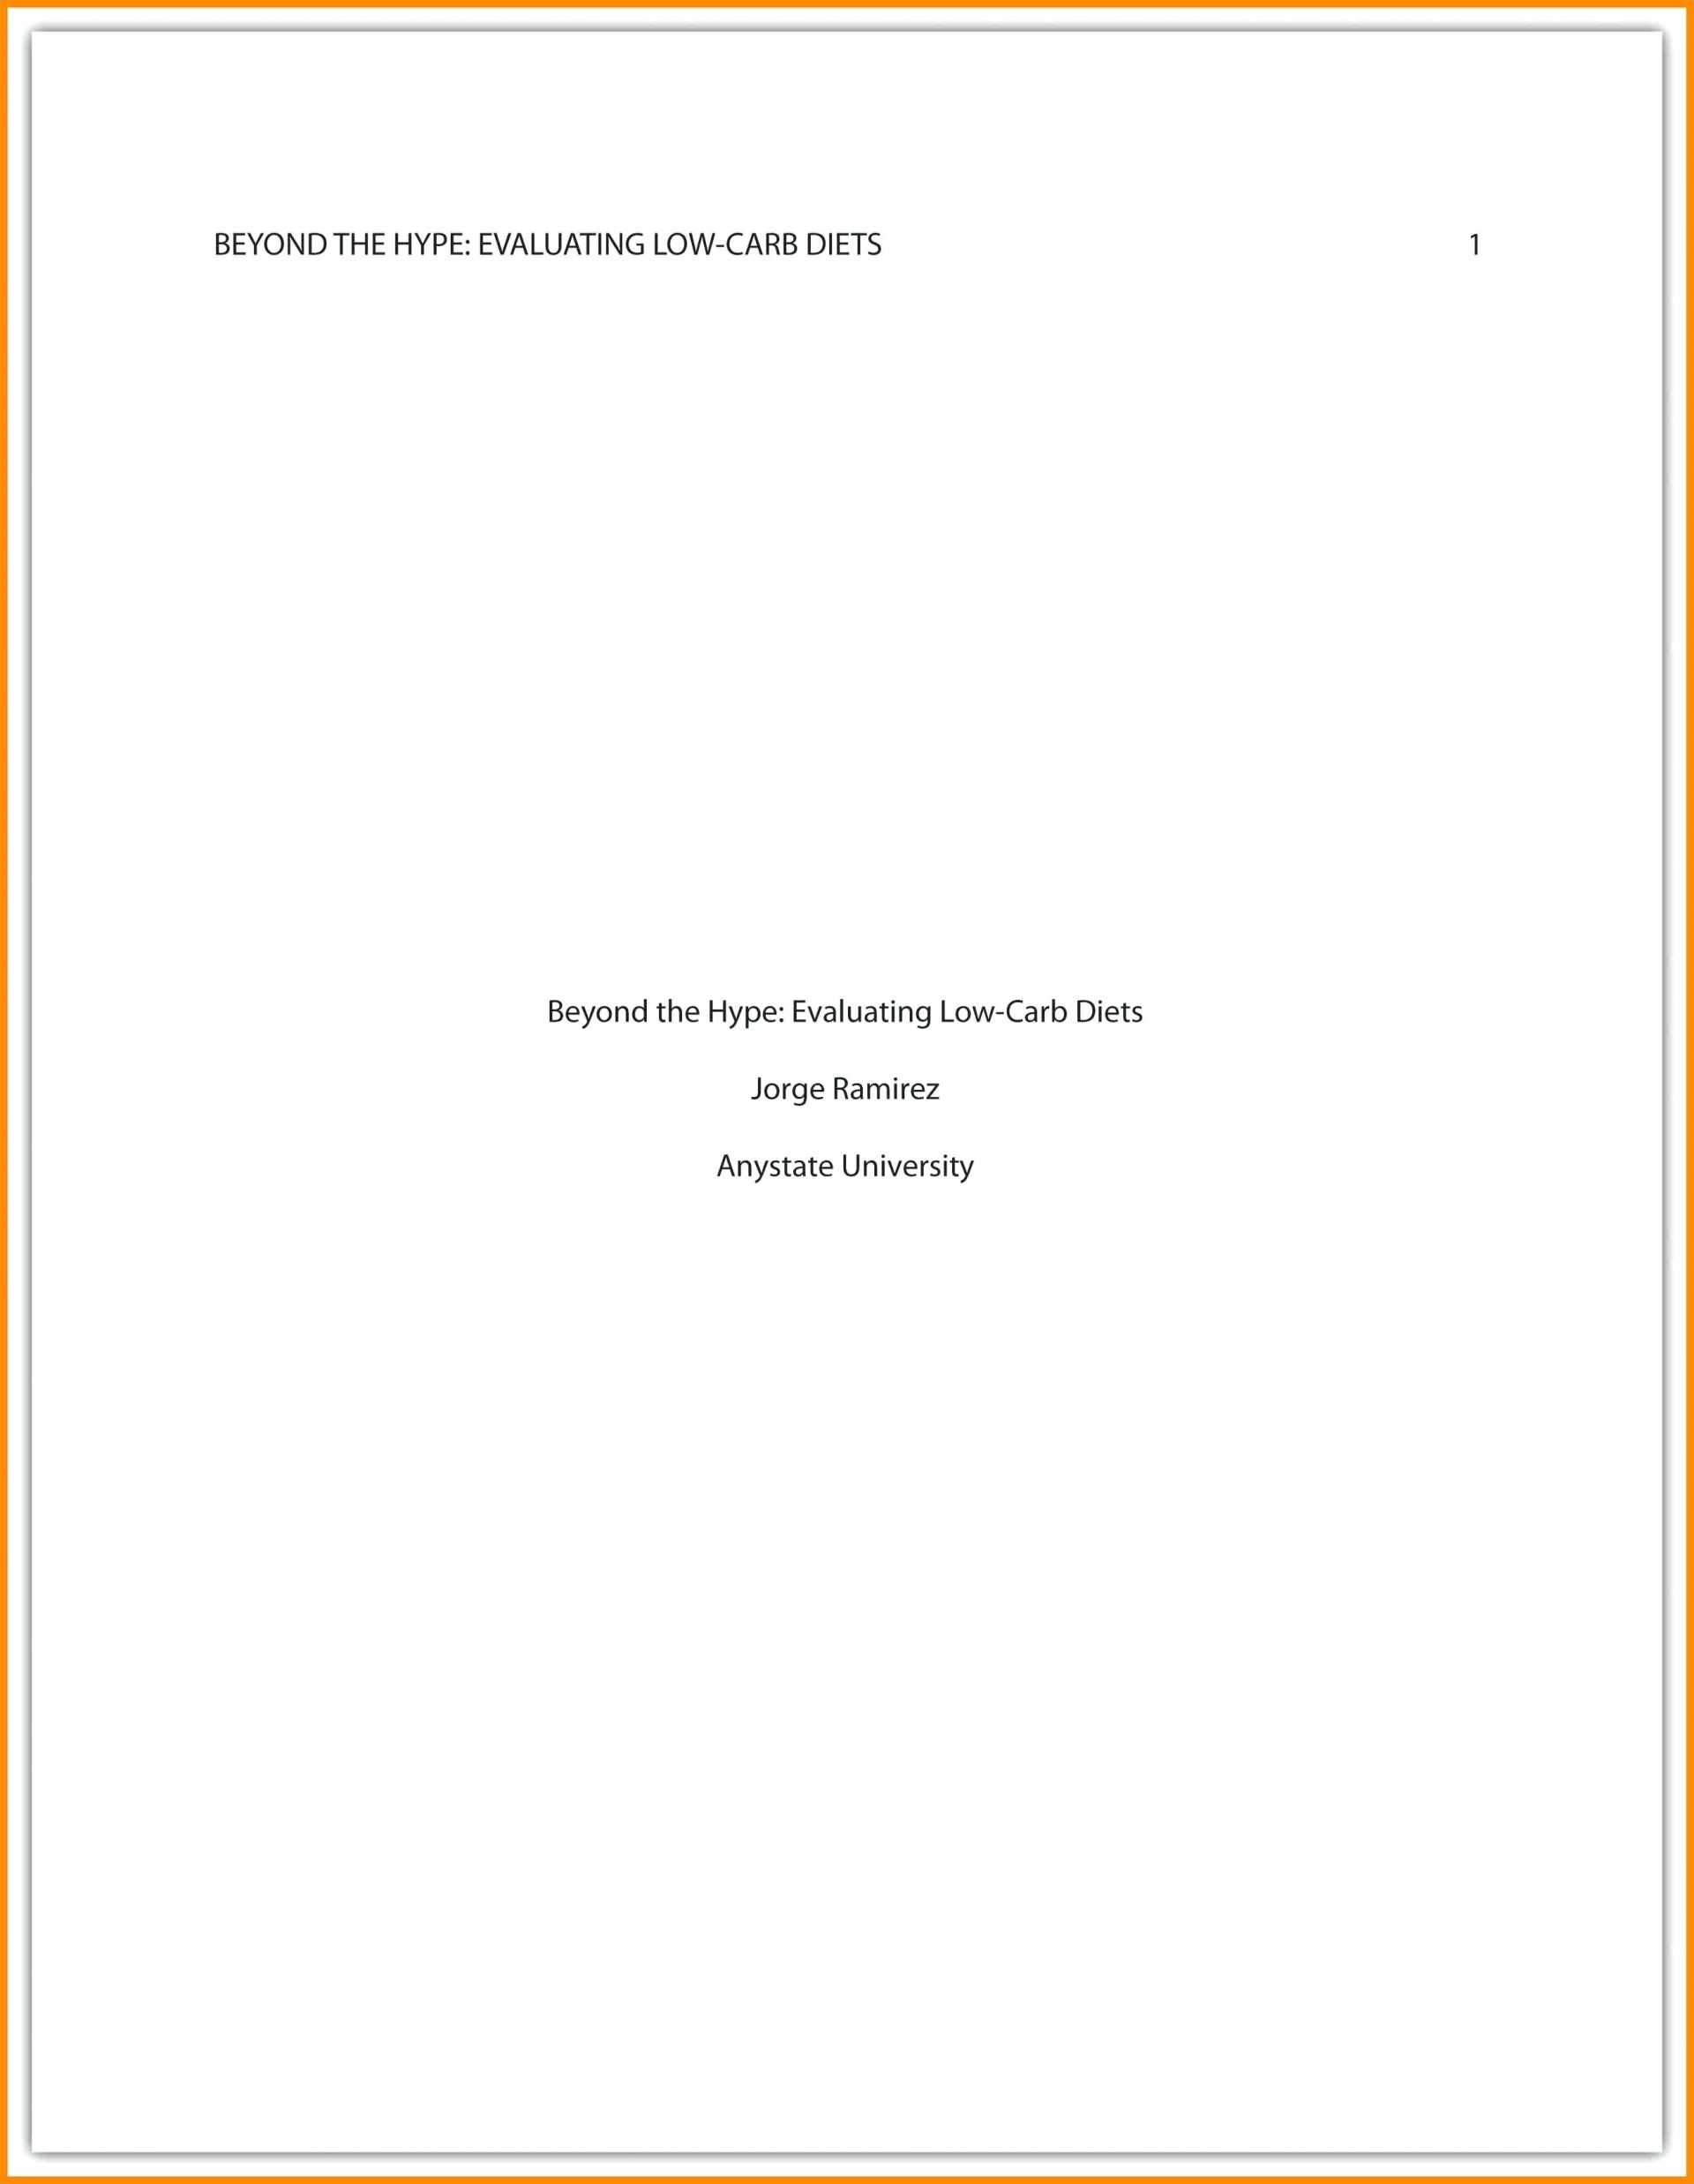 002 Asa Cover Page Template Style Essay Marvelous Example Apa Research Proposal Sample 1920